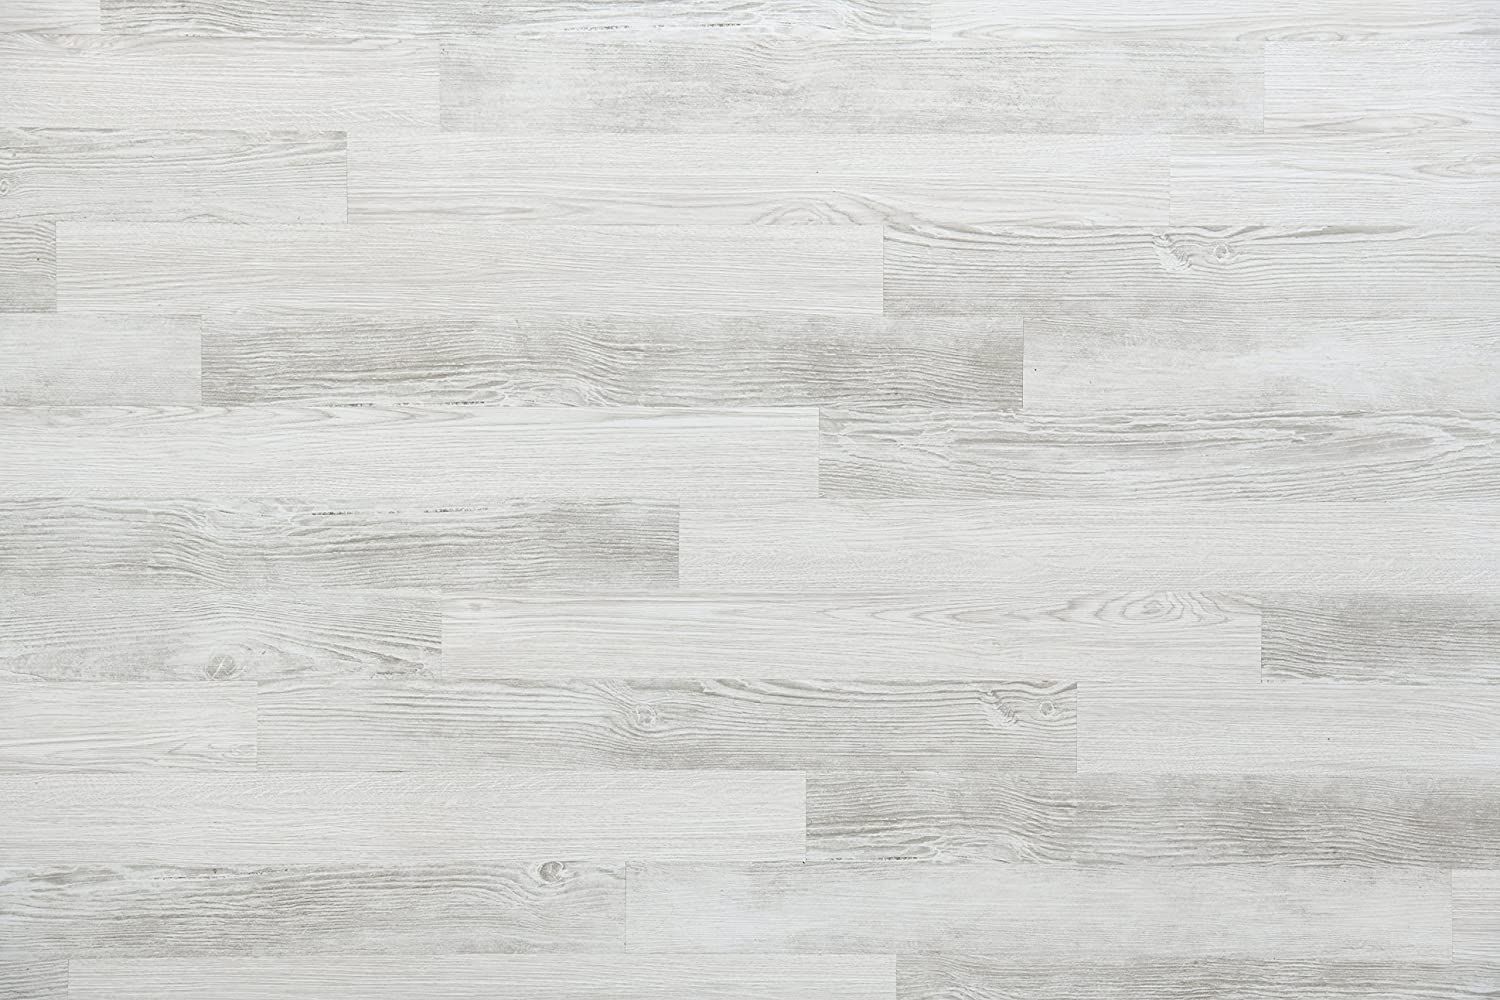 "Nance Industries E-Z Wall Peel and Press Vinyl Wall Planks 4""x36"" White Wash Barnwood Colors, 20 Planks"